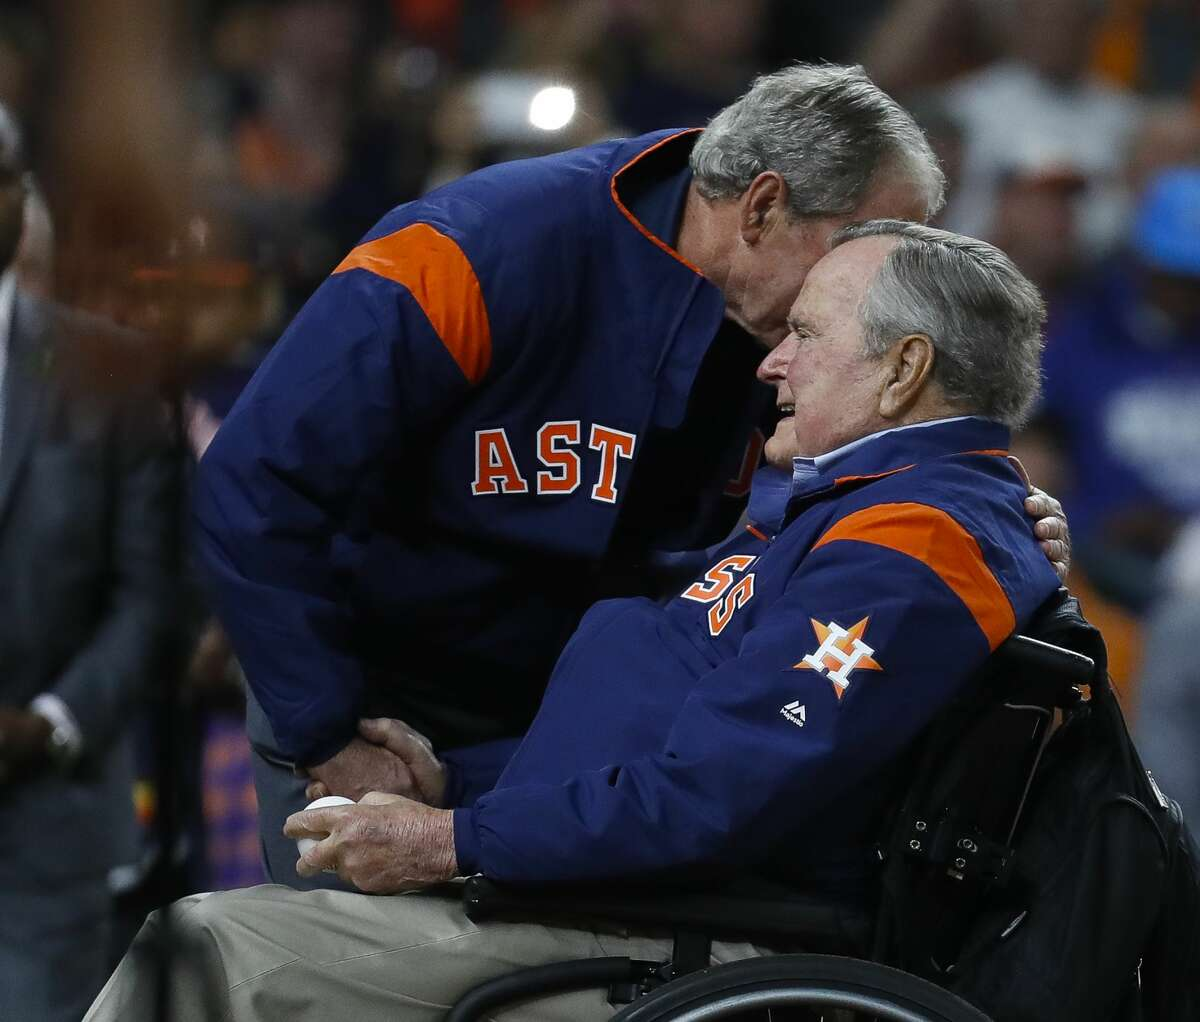 Former President George H.W. Bush and his son, former President George W. Bush, throw out the first pitch of Game 5 of the World Series to at Minute Maid Park on Sunday, Oct. 29, 2017, in Houston. ( Karen Warren / Houston Chronicle )